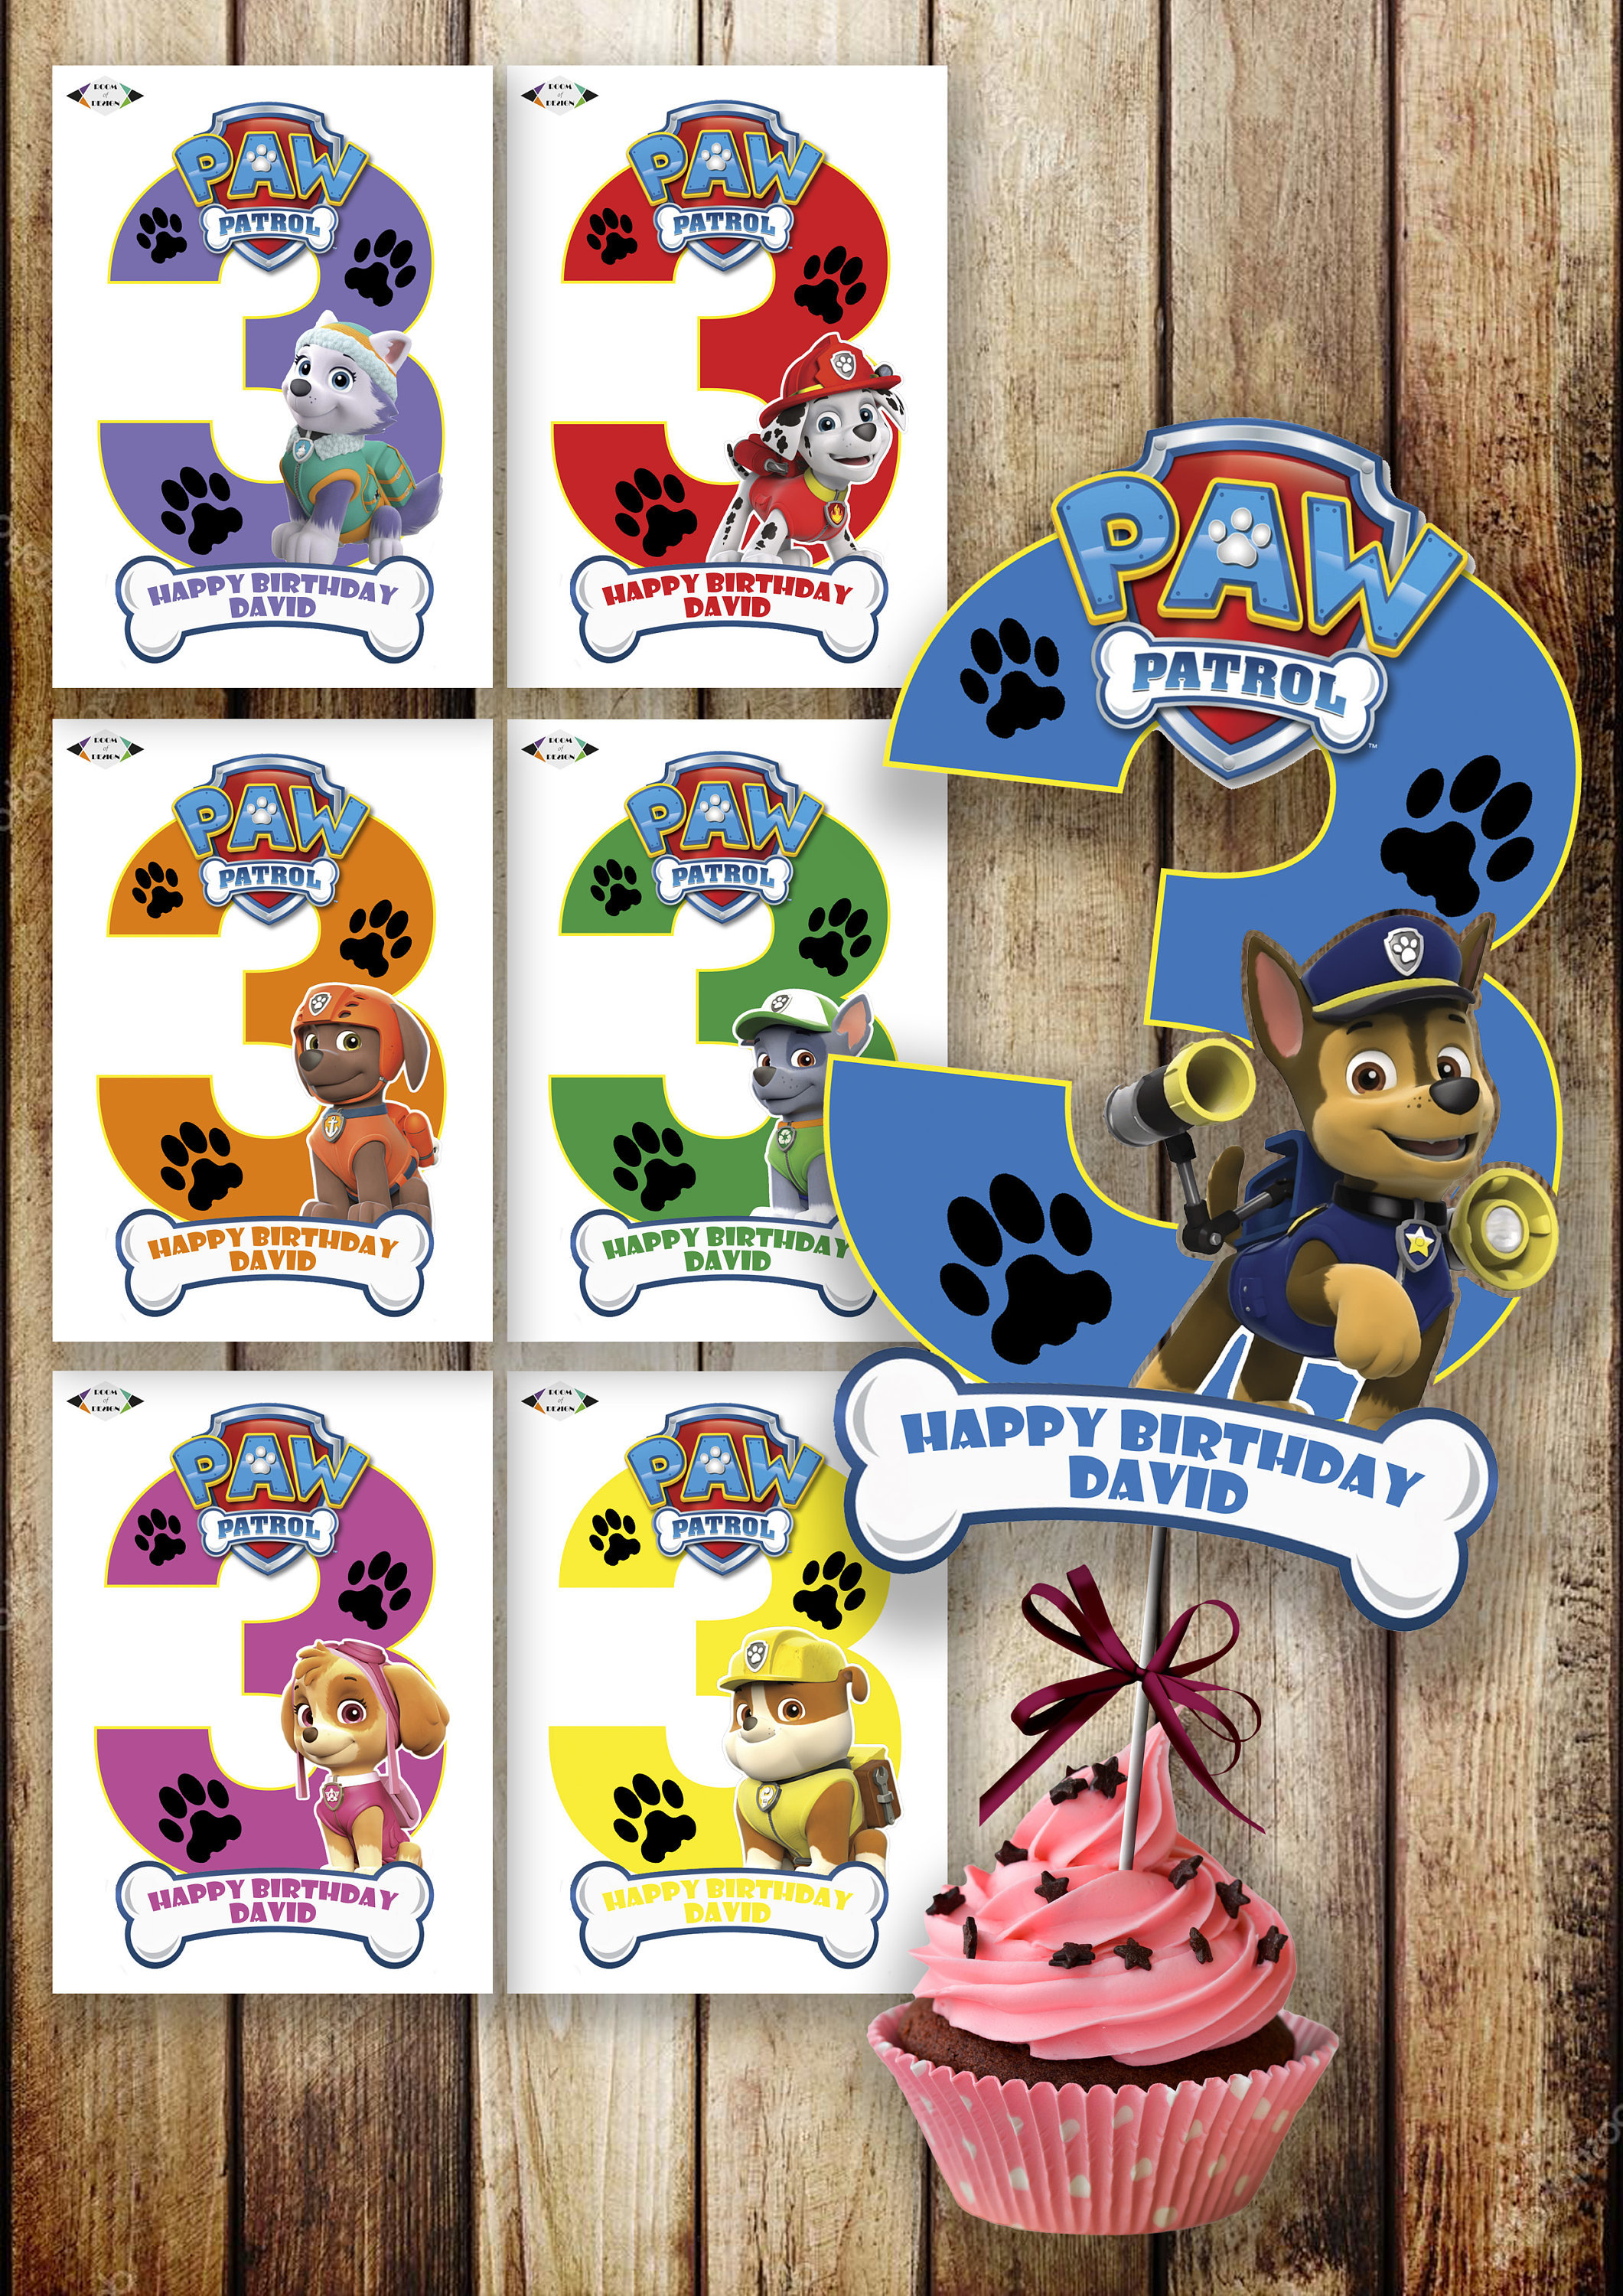 Astounding Paw Patrol Printable Paw Patrol Paw Patrol Centerpiece Paw Patrol Number 3 Centerpieces Paw Patrol Party Paw Patrol Birthday Diy Download Free Architecture Designs Scobabritishbridgeorg